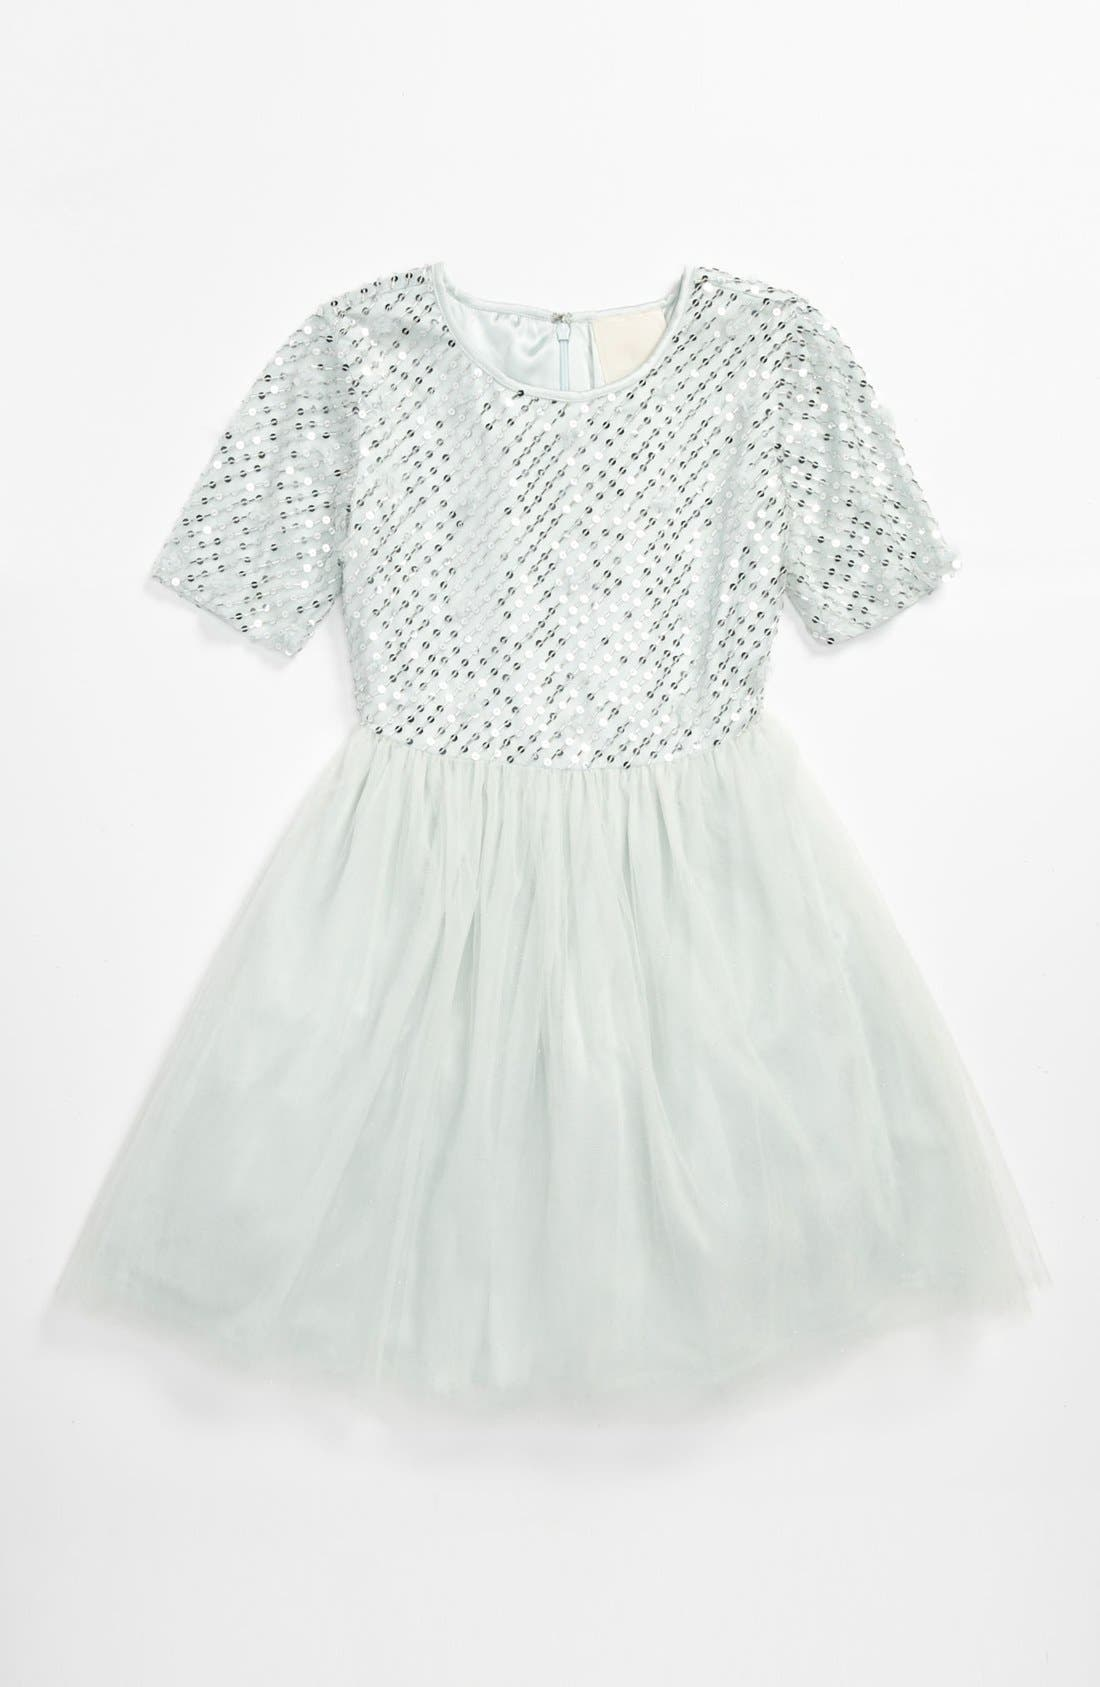 Alternate Image 1 Selected - La Piccola Danza Kidswear Elbow Sleeve Beaded Dress (Big Girls)